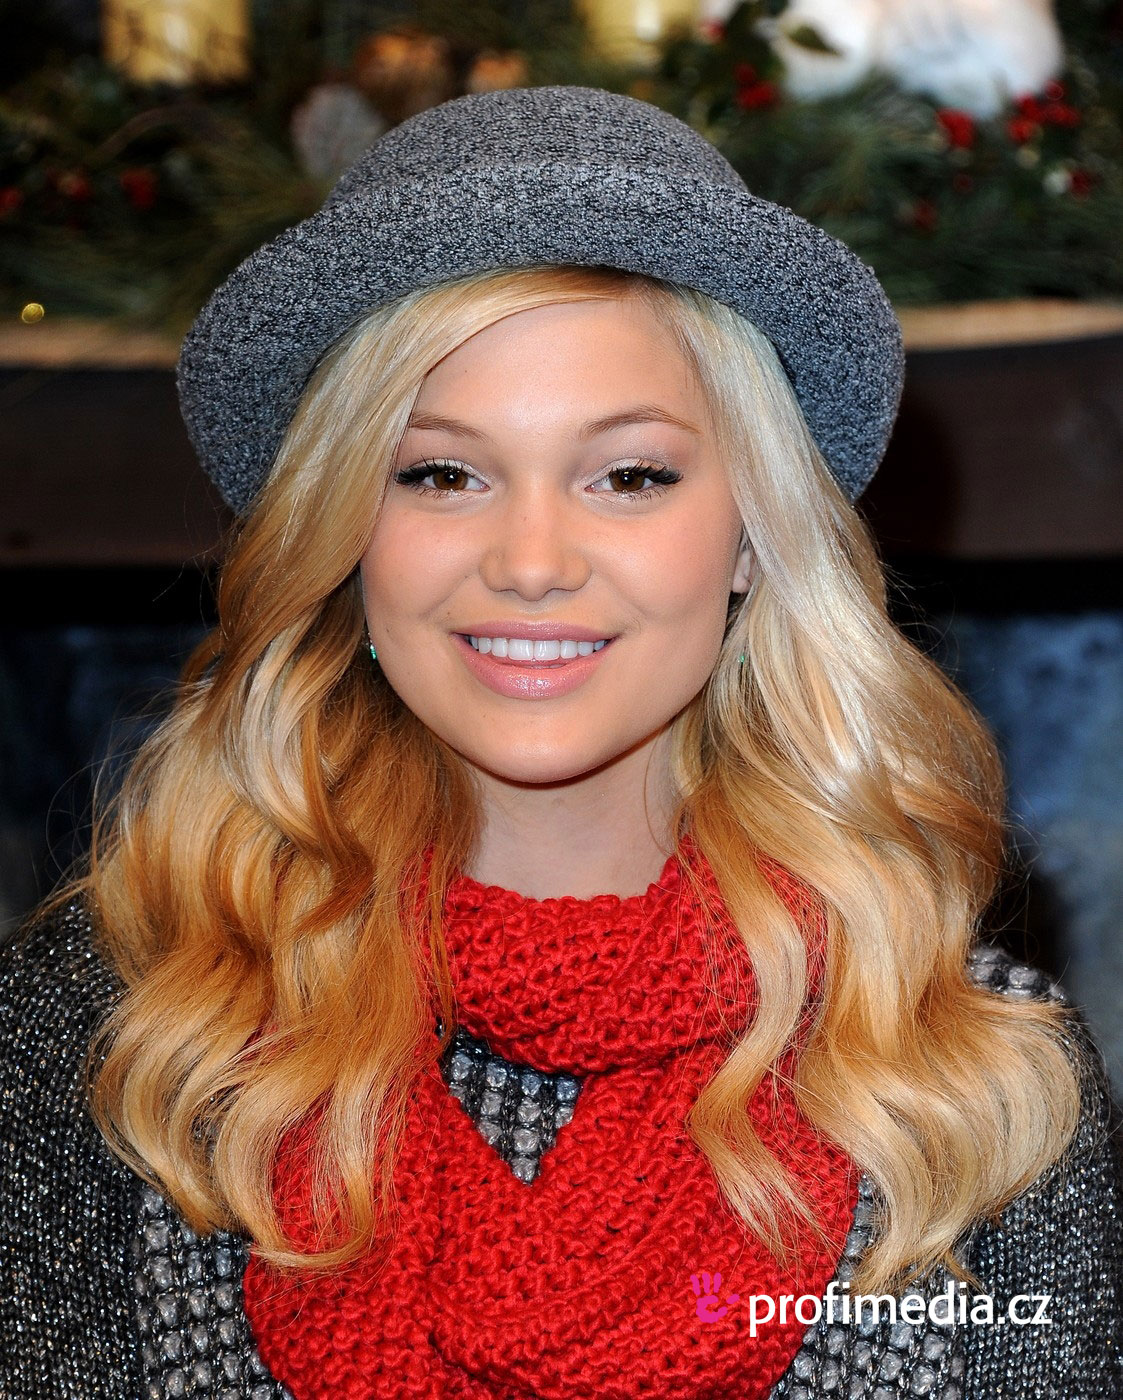 Prom hairstyle olivia holt olivia holt Several varieties of wedding hairstyles for girls in winter season